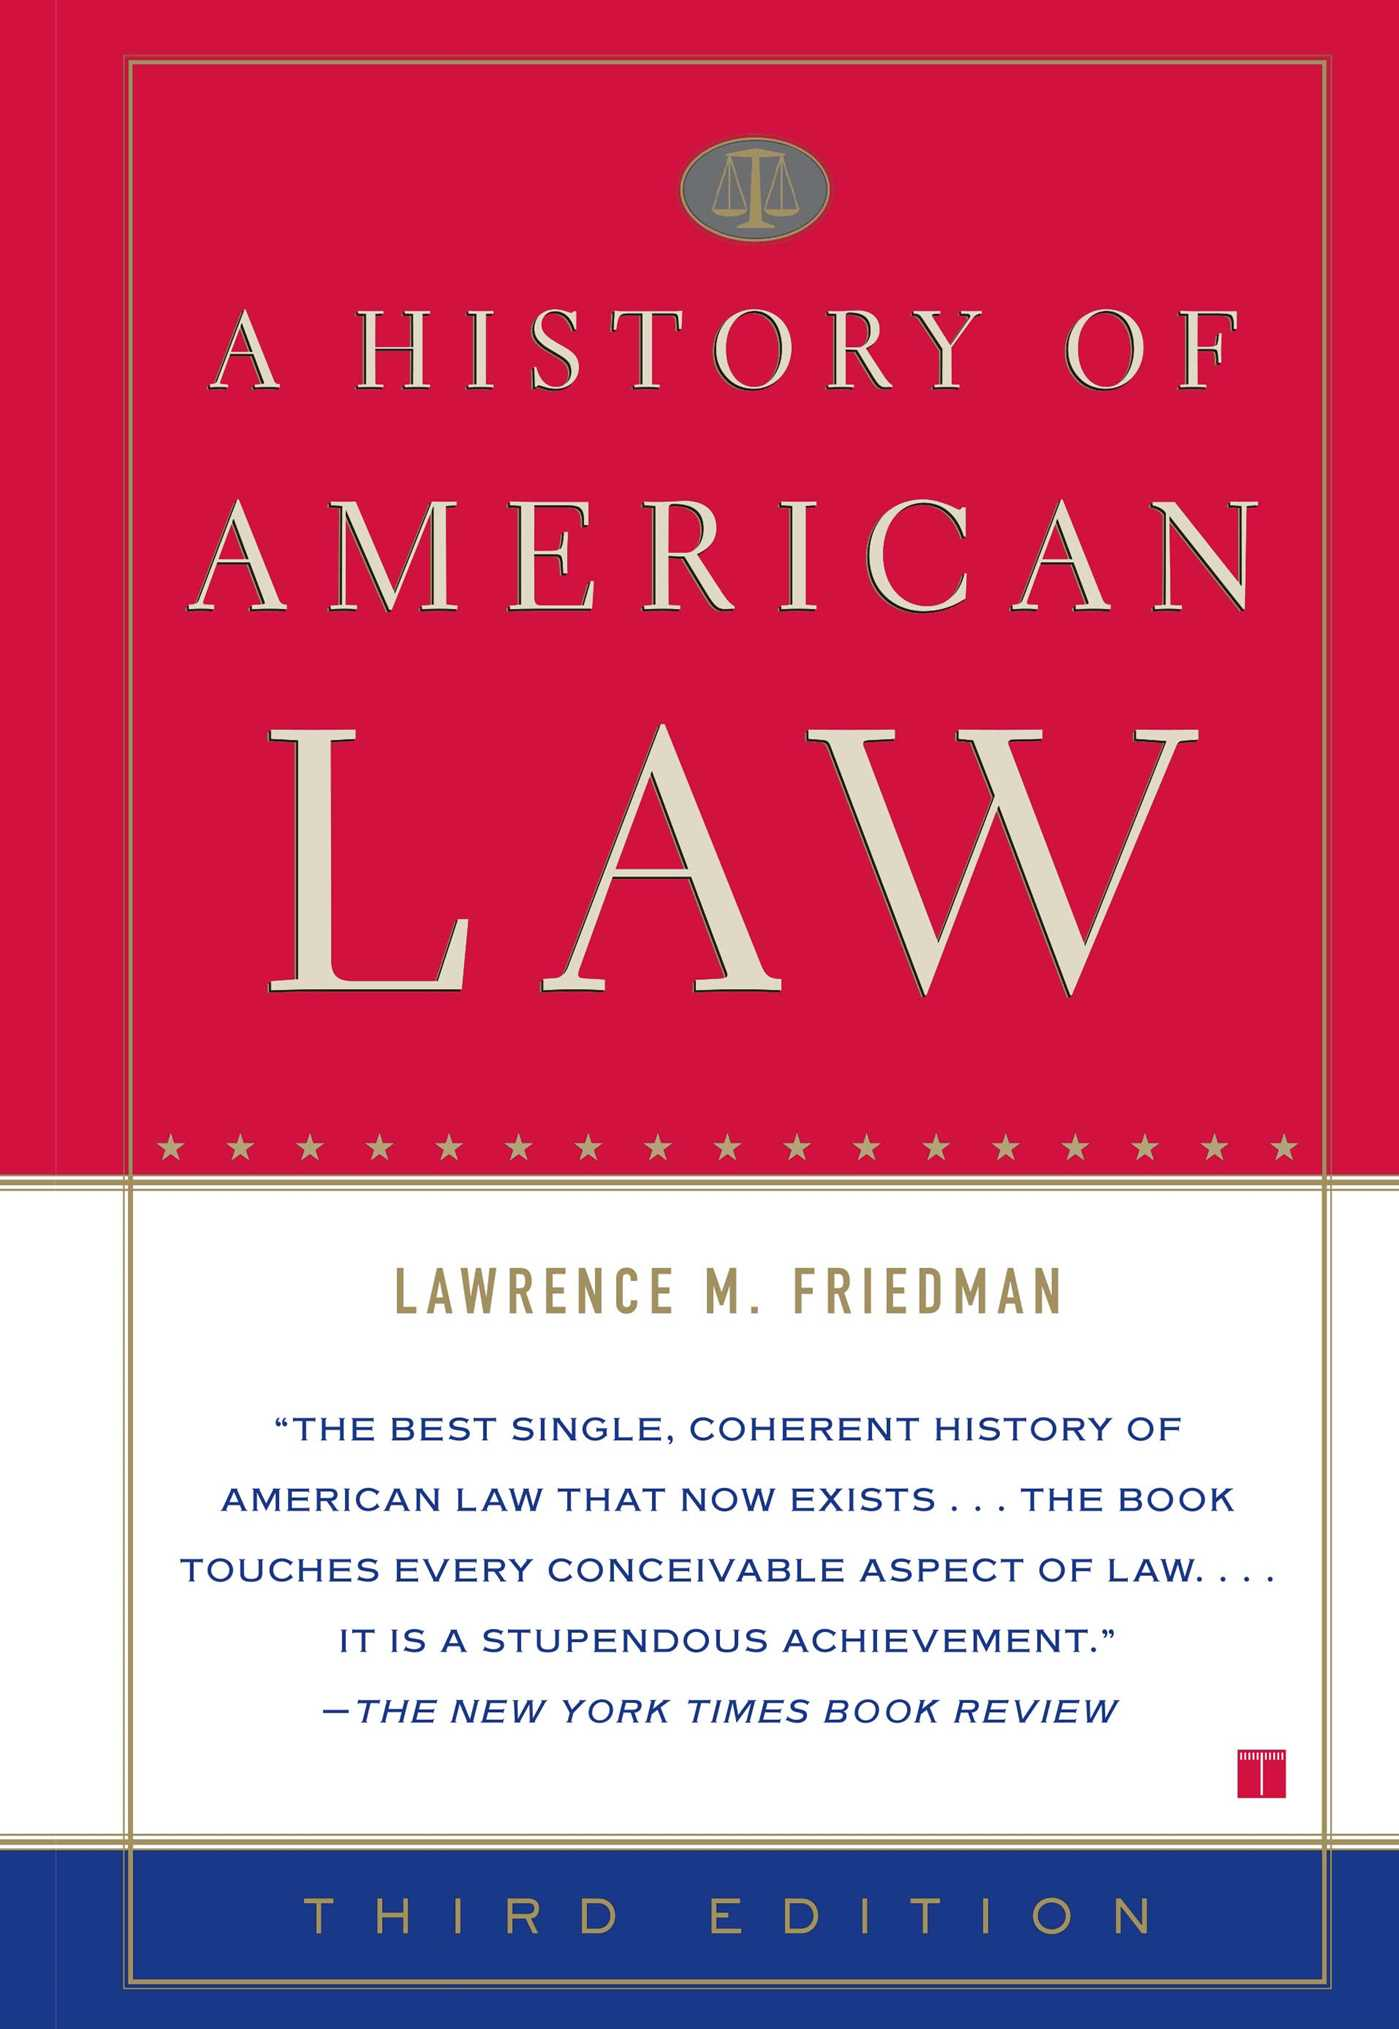 A-history-of-american-law-third-edition-9780743282581_hr